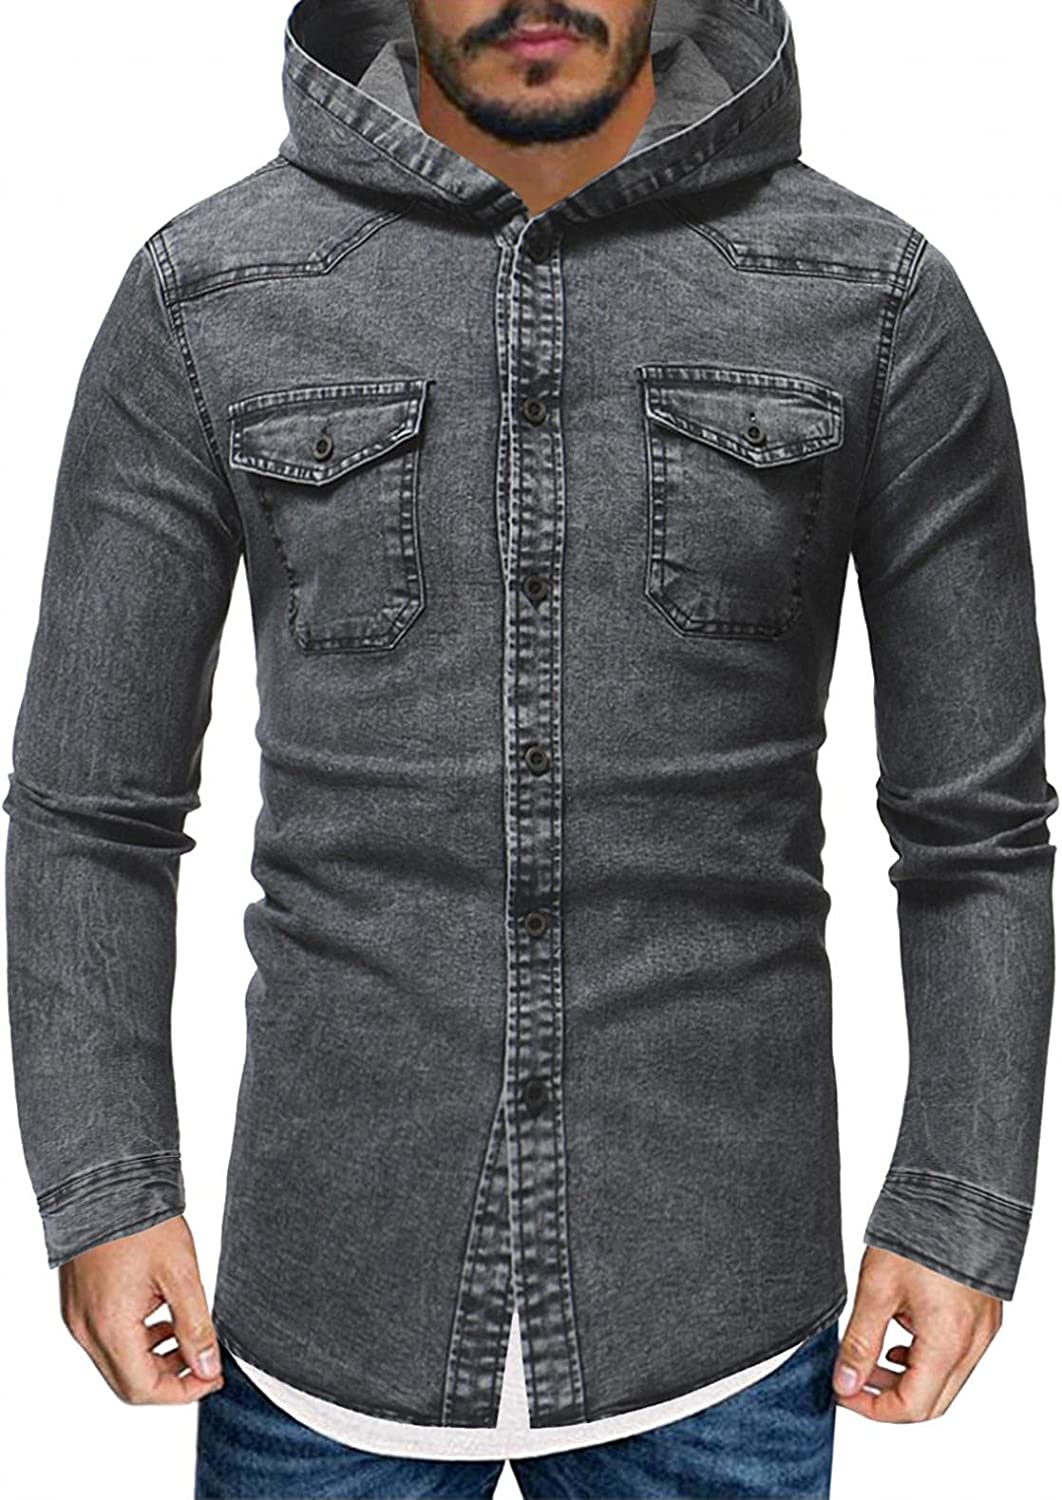 FUNEY Jean Jacket for Mens Fashion Slim-Fit Long Sleeve Hoodies Vintage Washed Denim Button Down Shirts Jackets Outwear